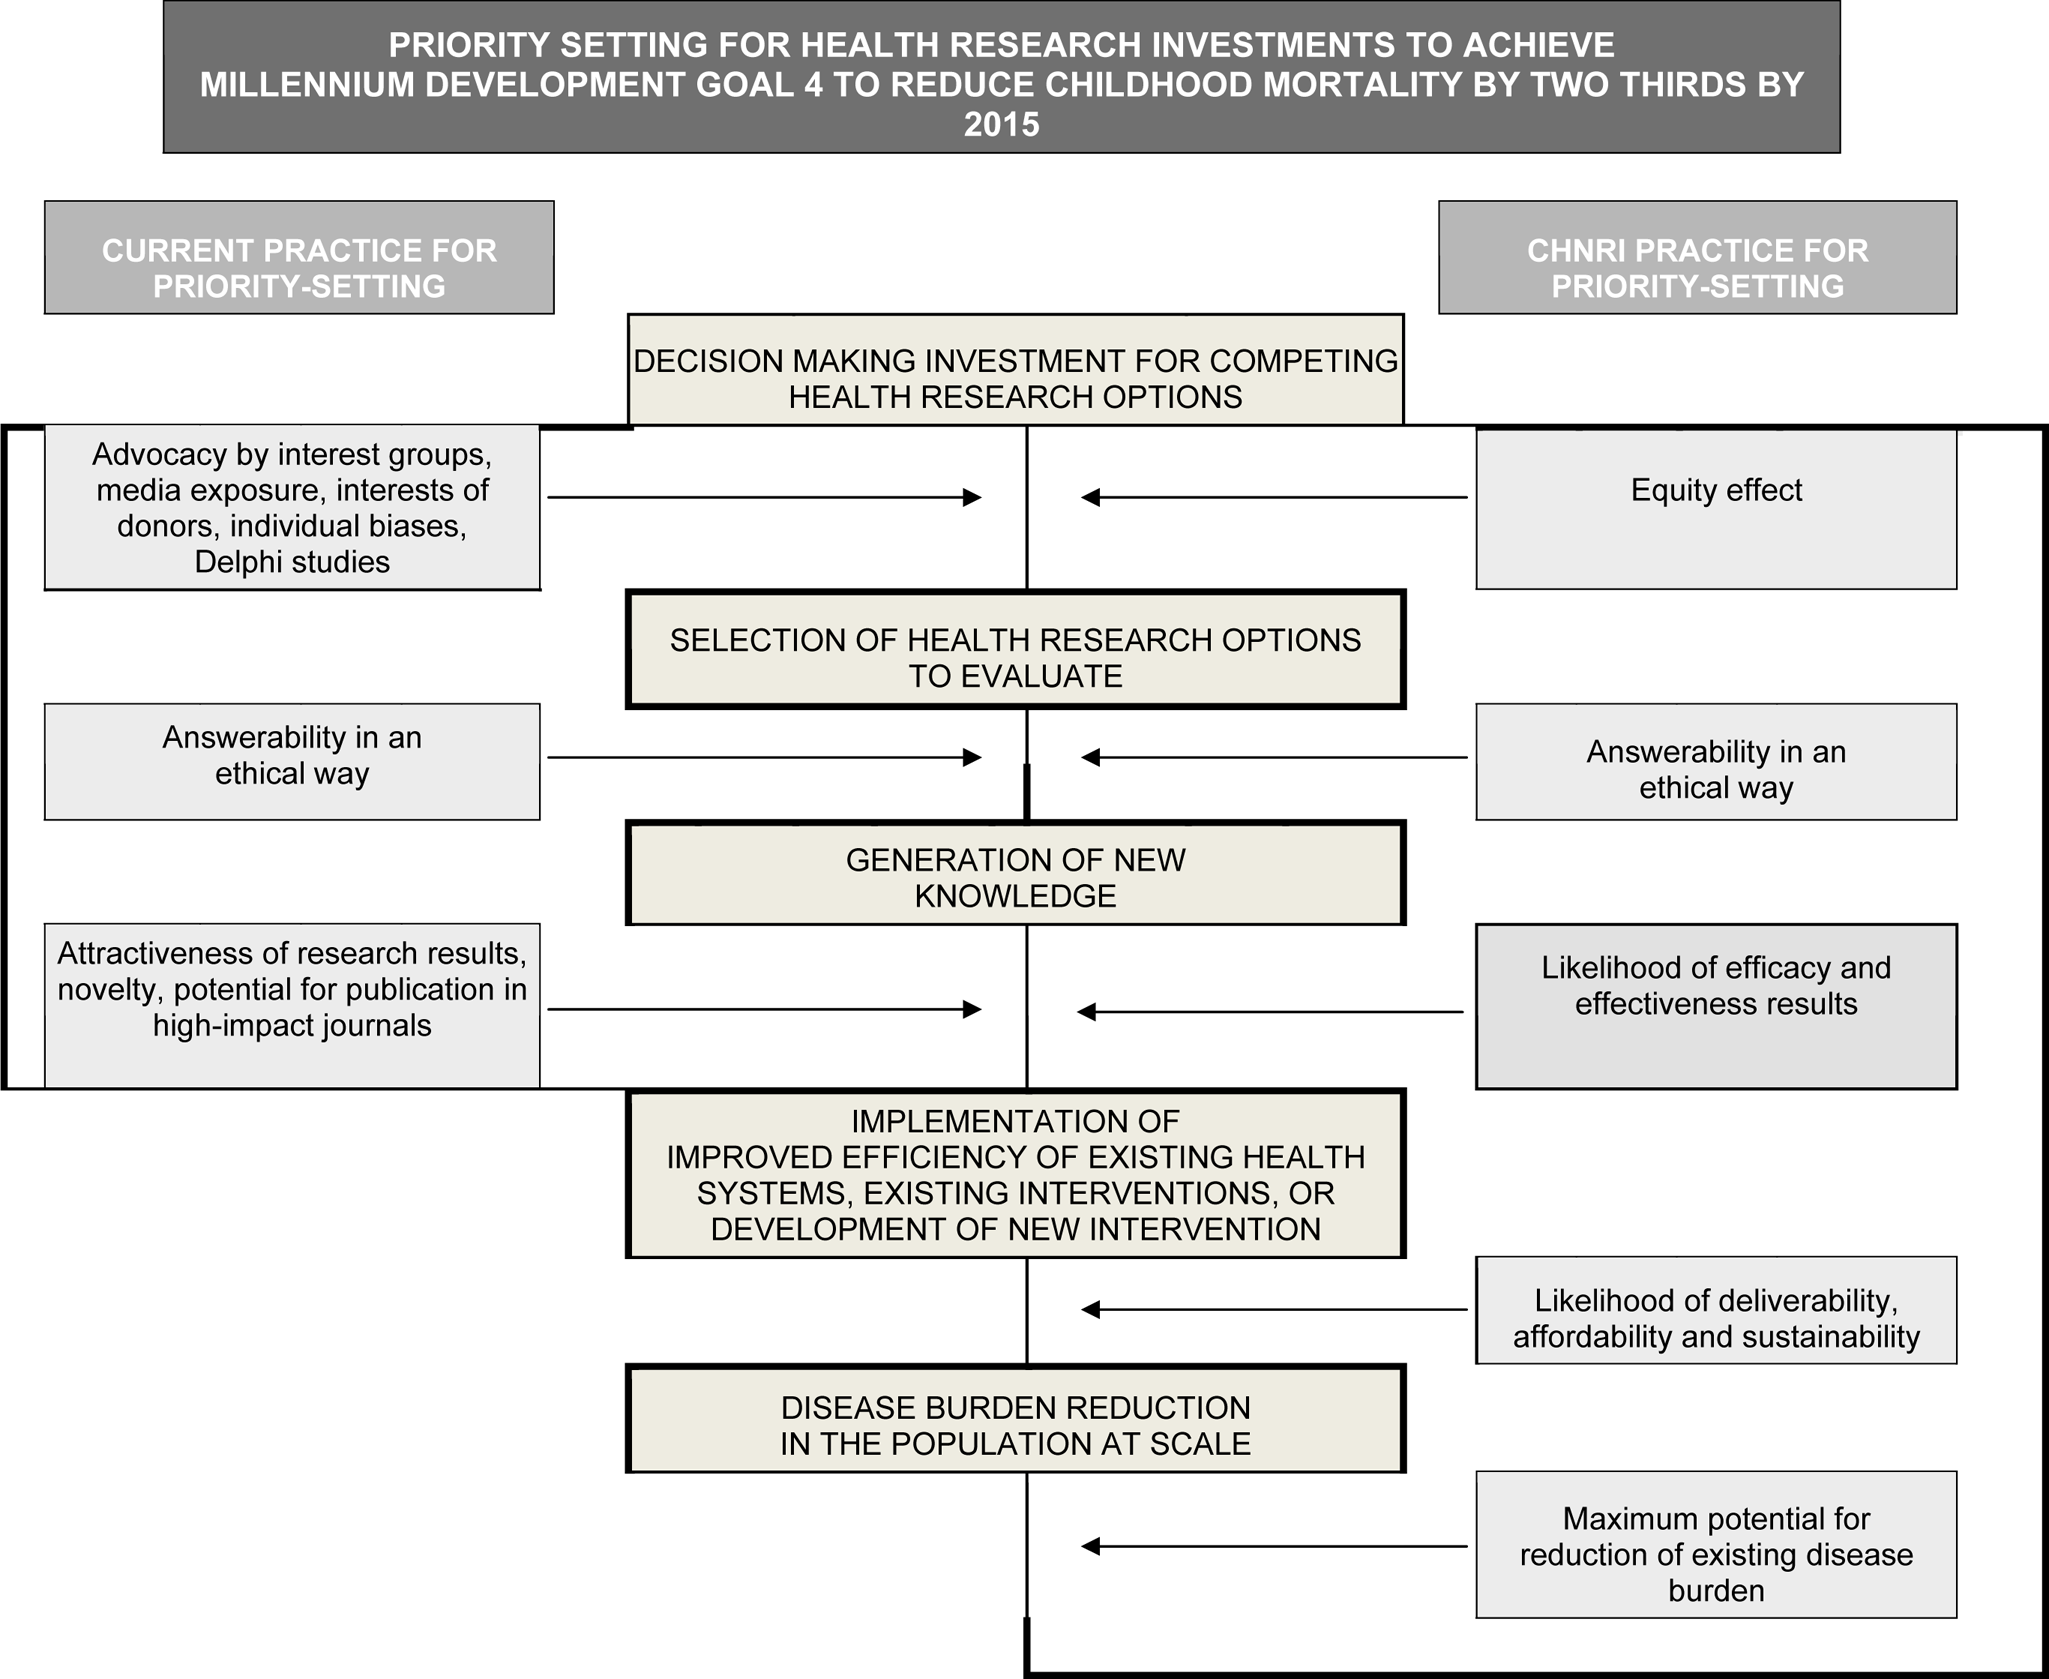 Conceptual framework for Child Health and Nutrition Initiative (CHNRI) showing steps from health research investment to a decrease in burden of death, disease, or disability.